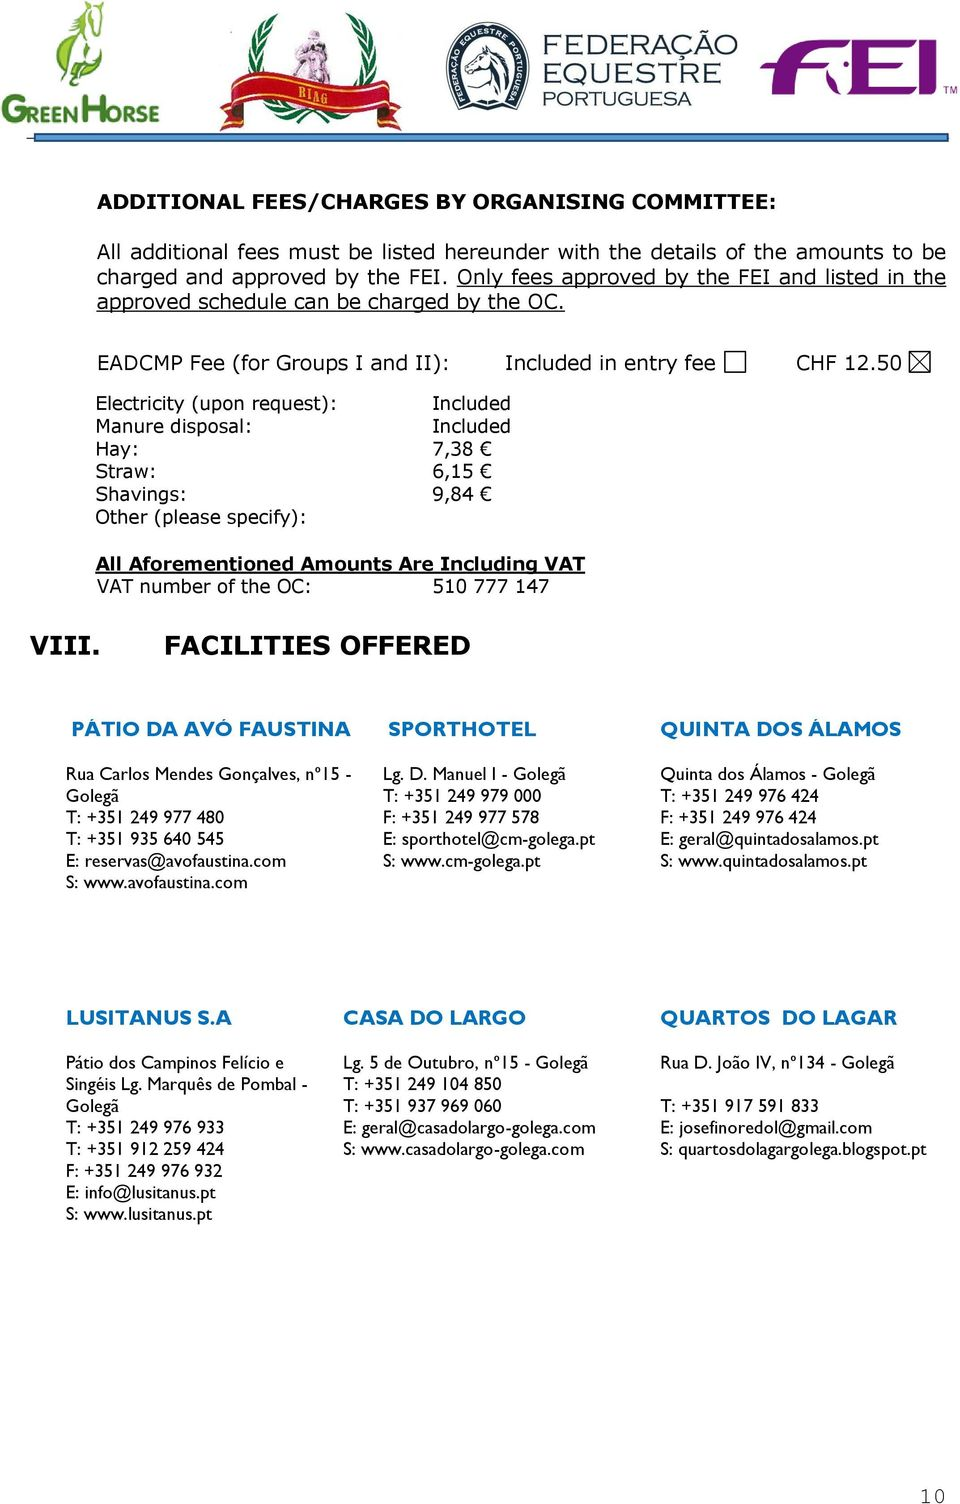 50 Electricity (upon request): Included Manure disposal: Included Hay: 7,38 Straw: 6,15 Shavings: 9,84 Other (please specify): All Aforementioned Amounts Are Including VAT VAT number of the OC: 510